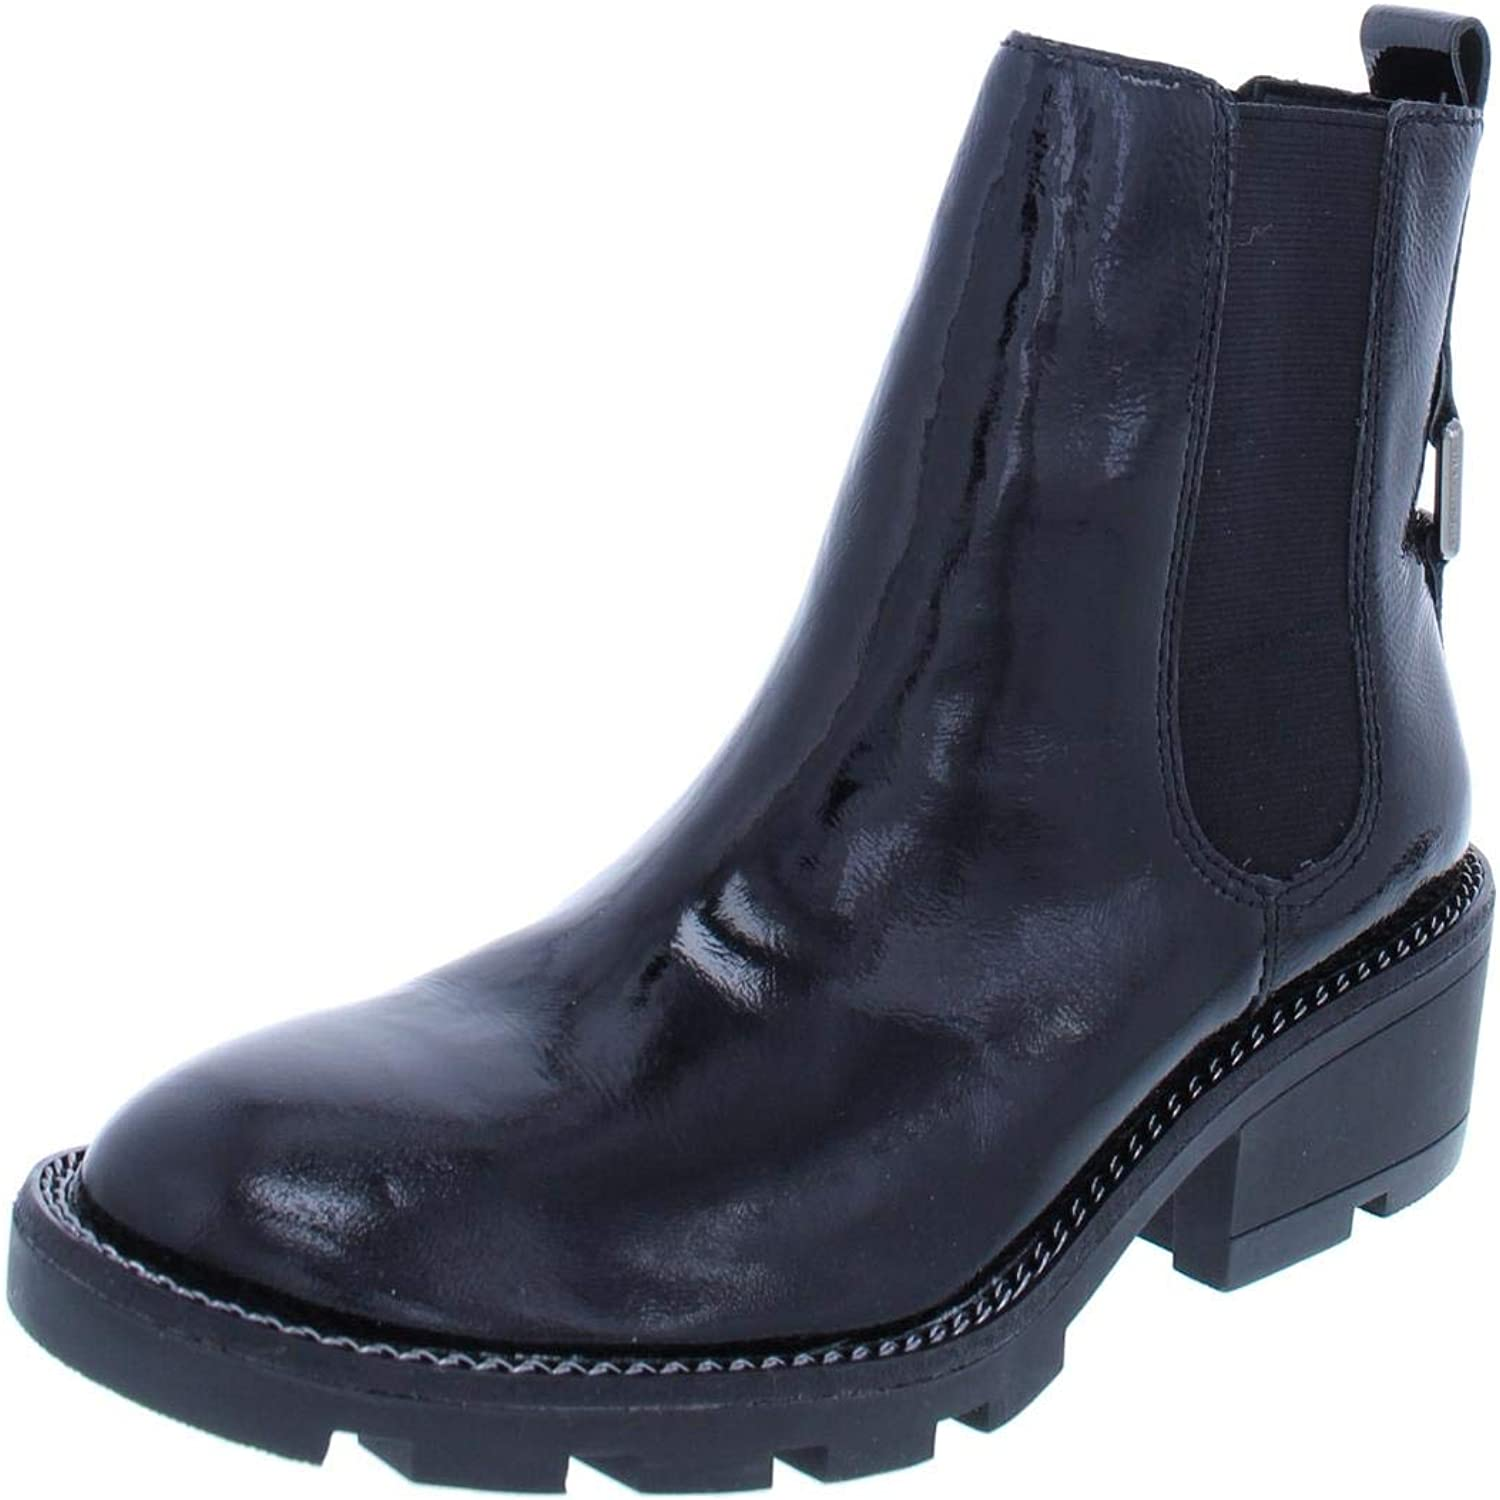 KENDALL + KYLIE Womens Porter Patent Leather Chelsea Boots Black 7 Medium (B,M)